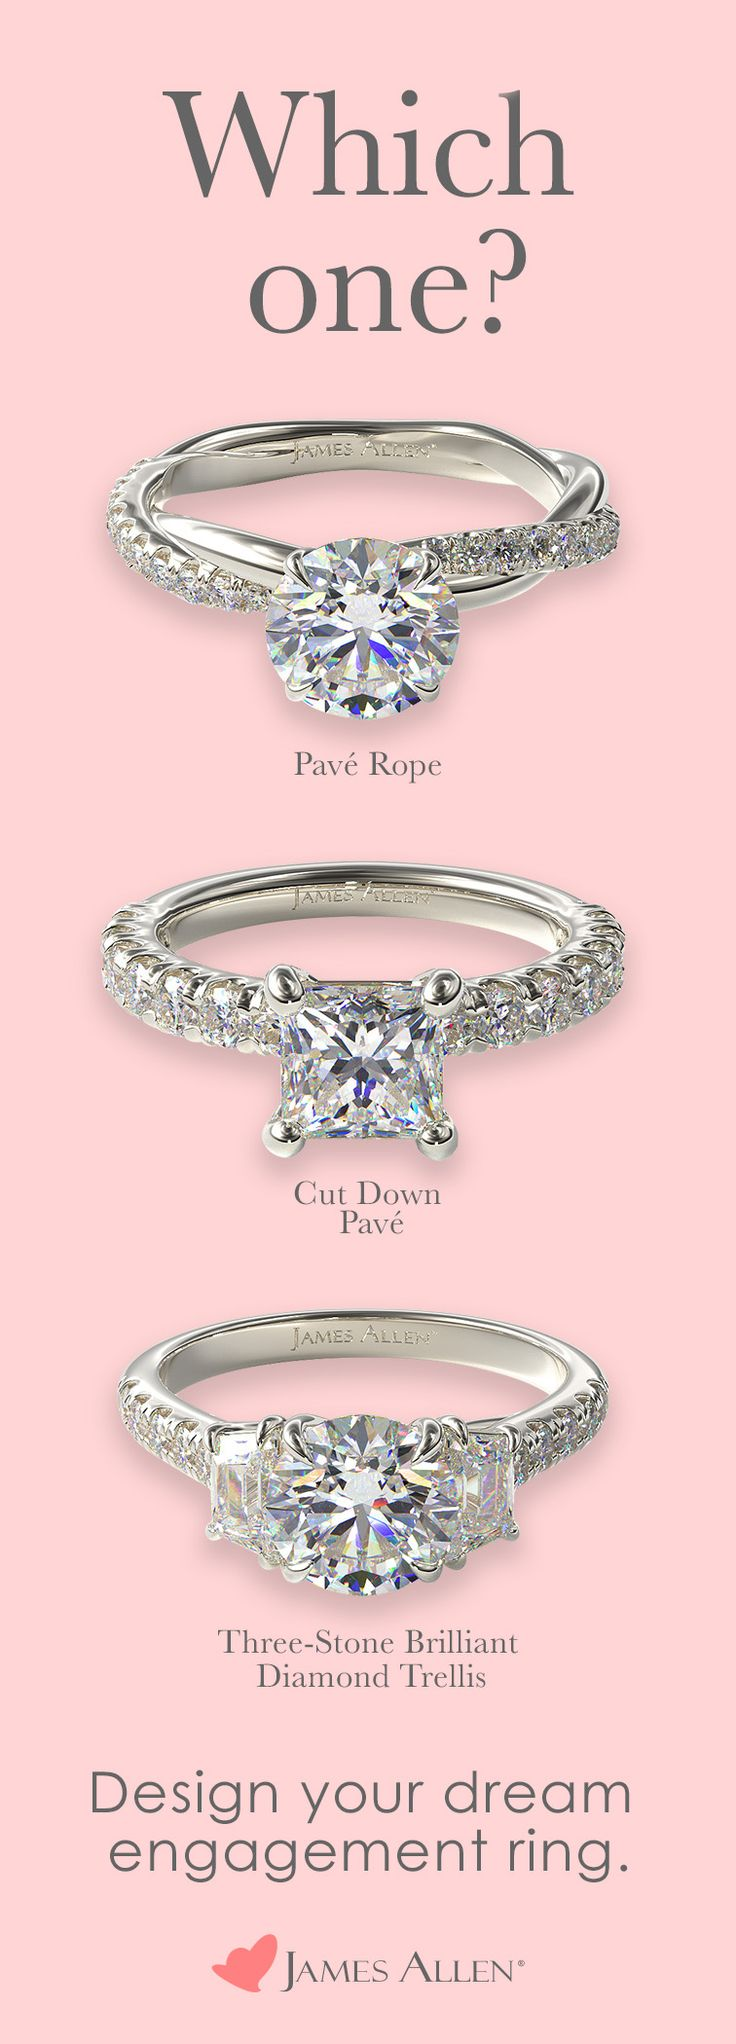 James Allen Has Hundreds Of Stunning Pave Engagement Ring Styles With 100 000 James Allen Engagement Rings Shop Engagement Rings Three Stone Engagement Rings